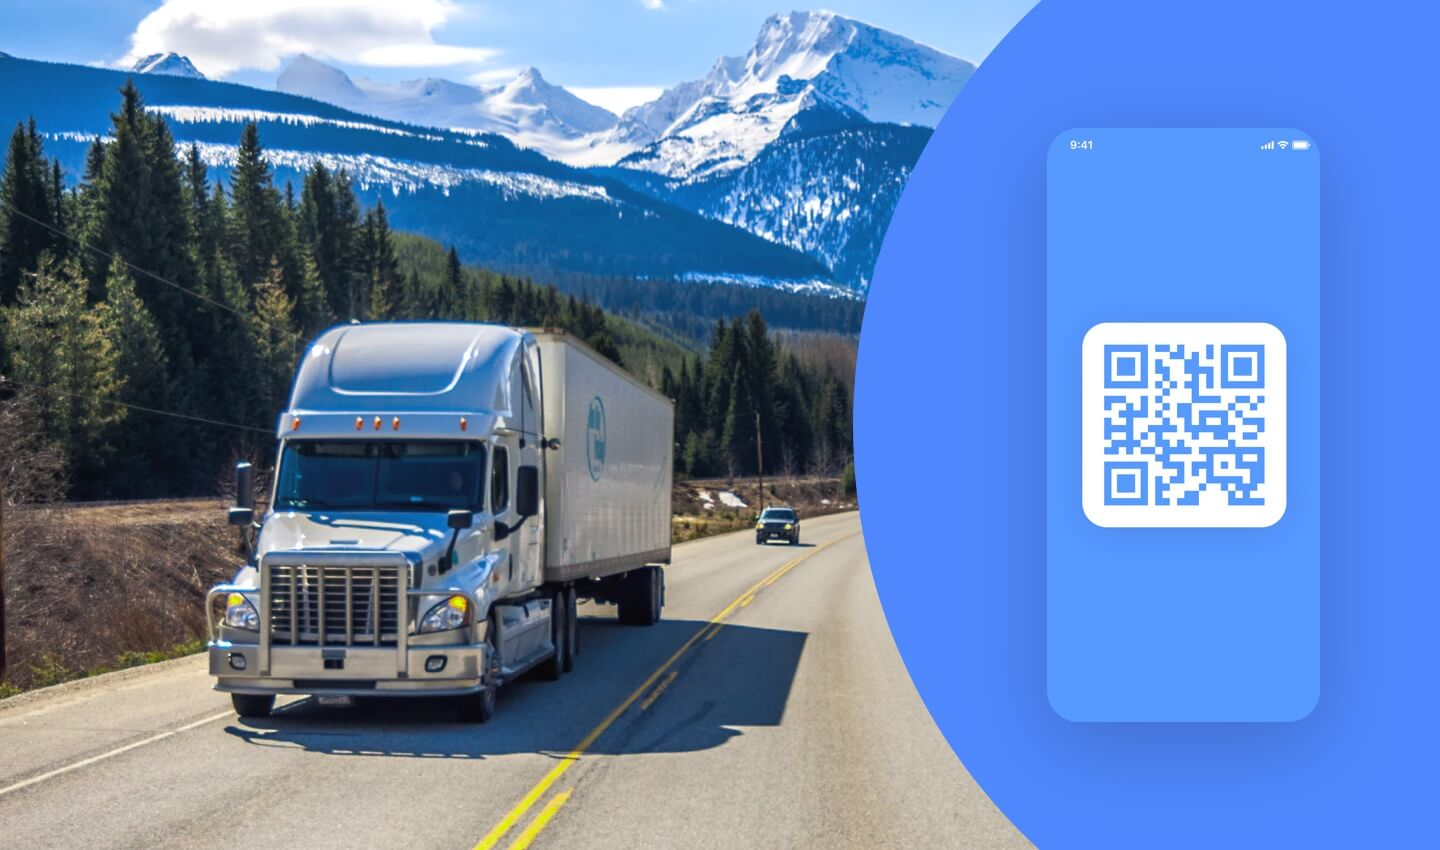 Extra features for uber for trucking app